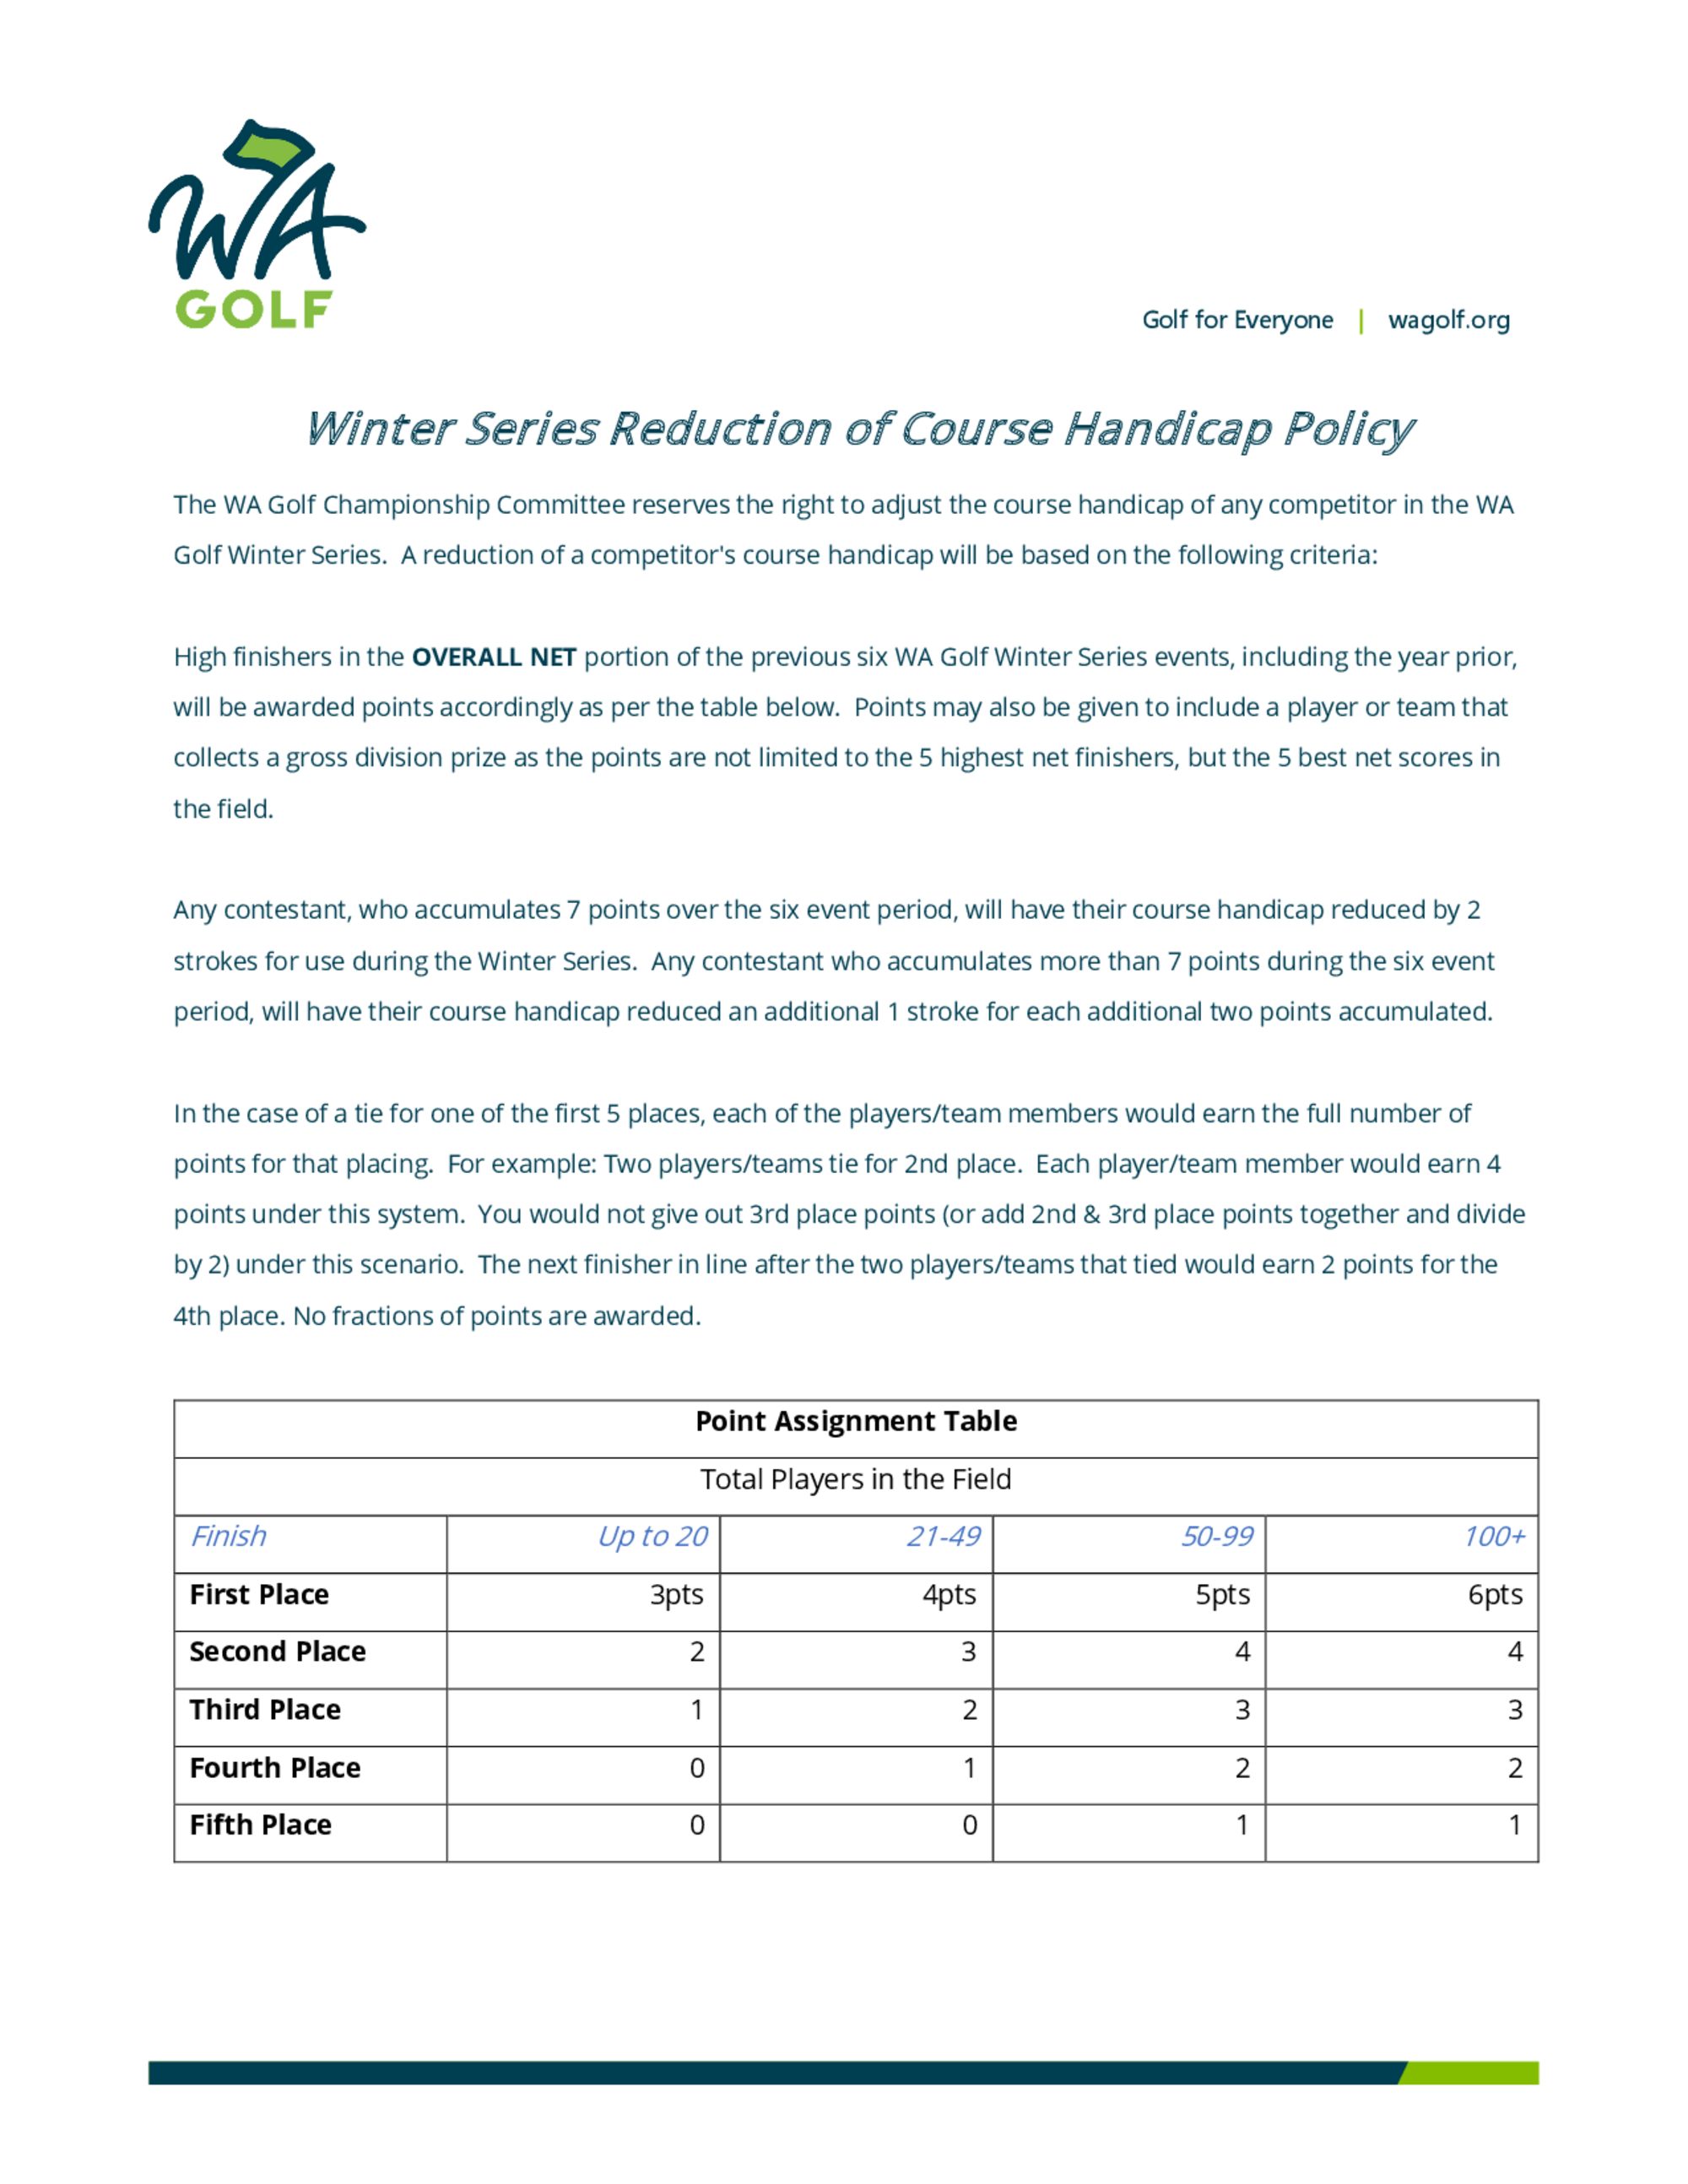 2020 winter series reduction of course handicap policy 1